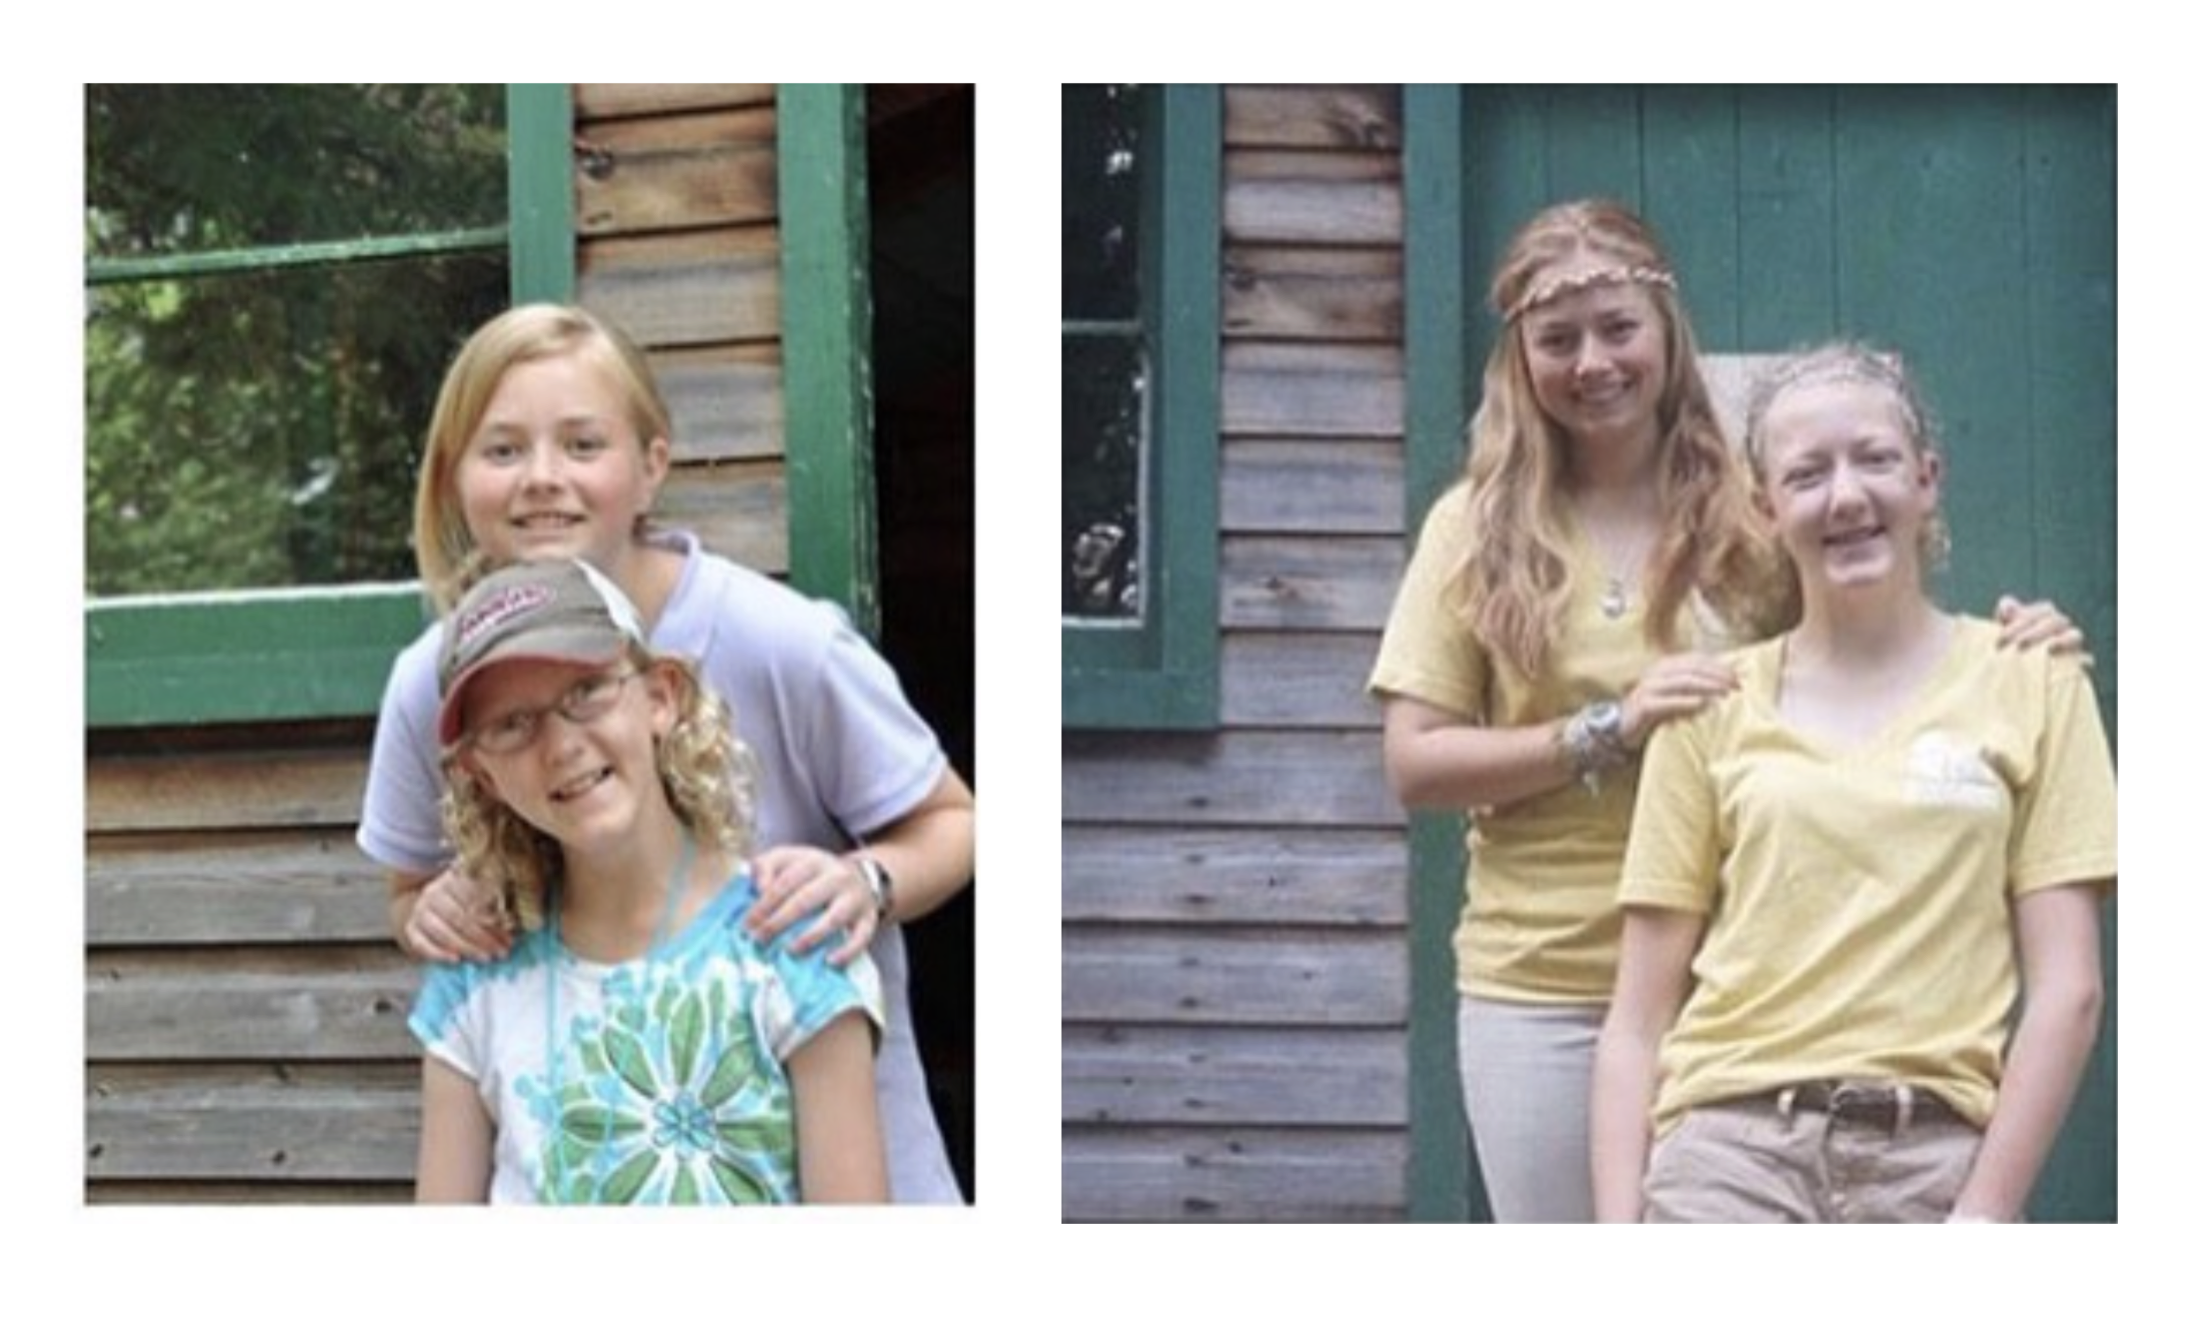 Katie (on the right) at camp, year 1 and year 10.